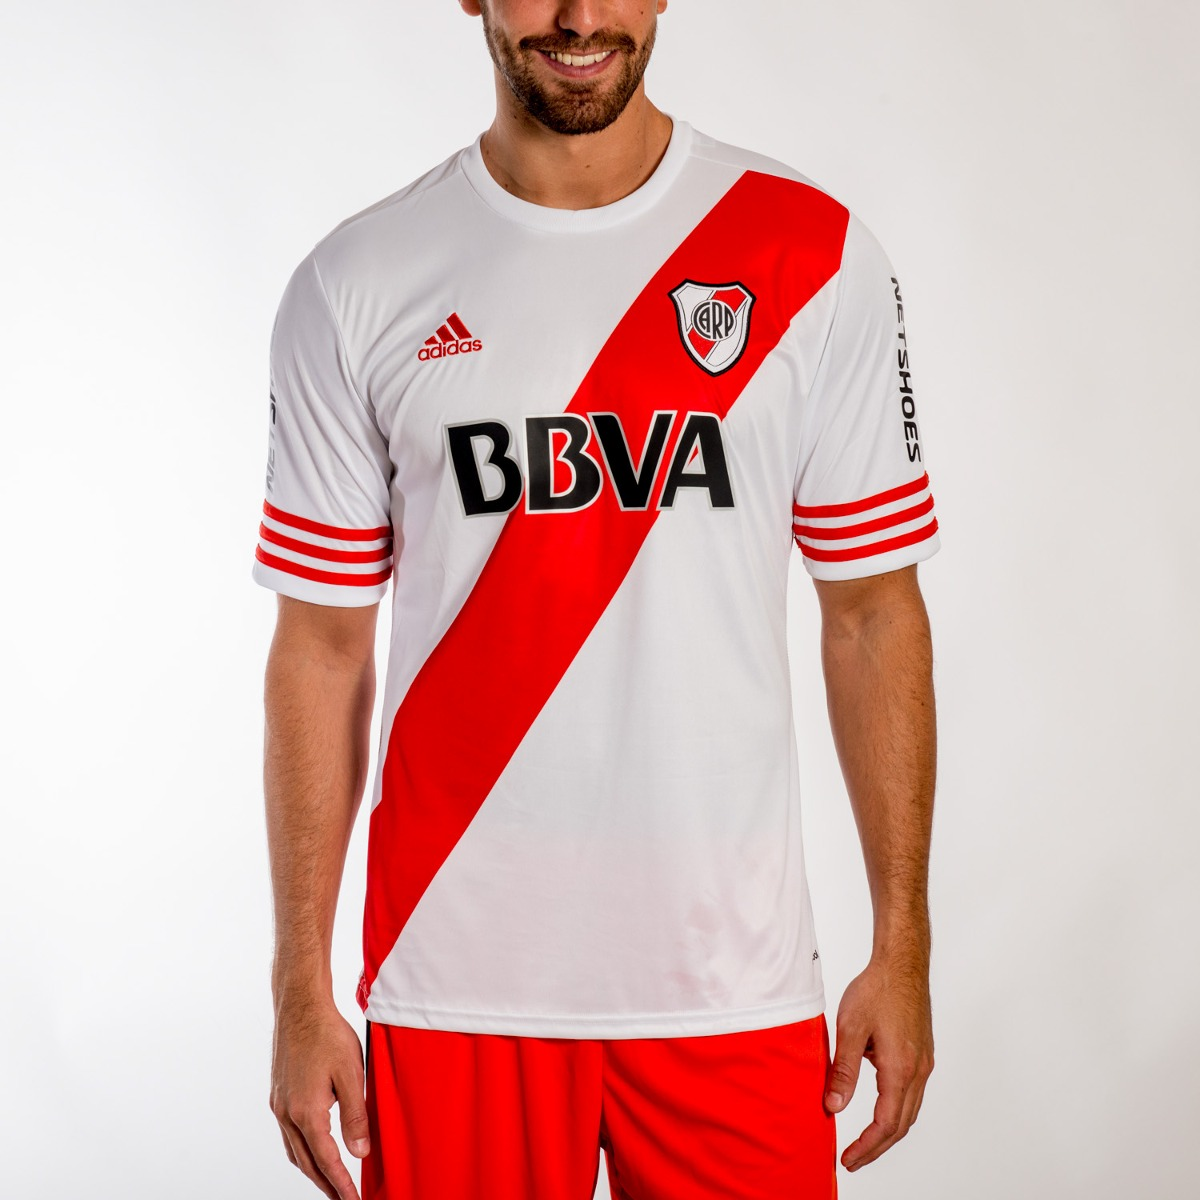 camiseta adidas river plate h jsy 2015-s16812- open sports. Cargando zoom. be75d0f5f56b6